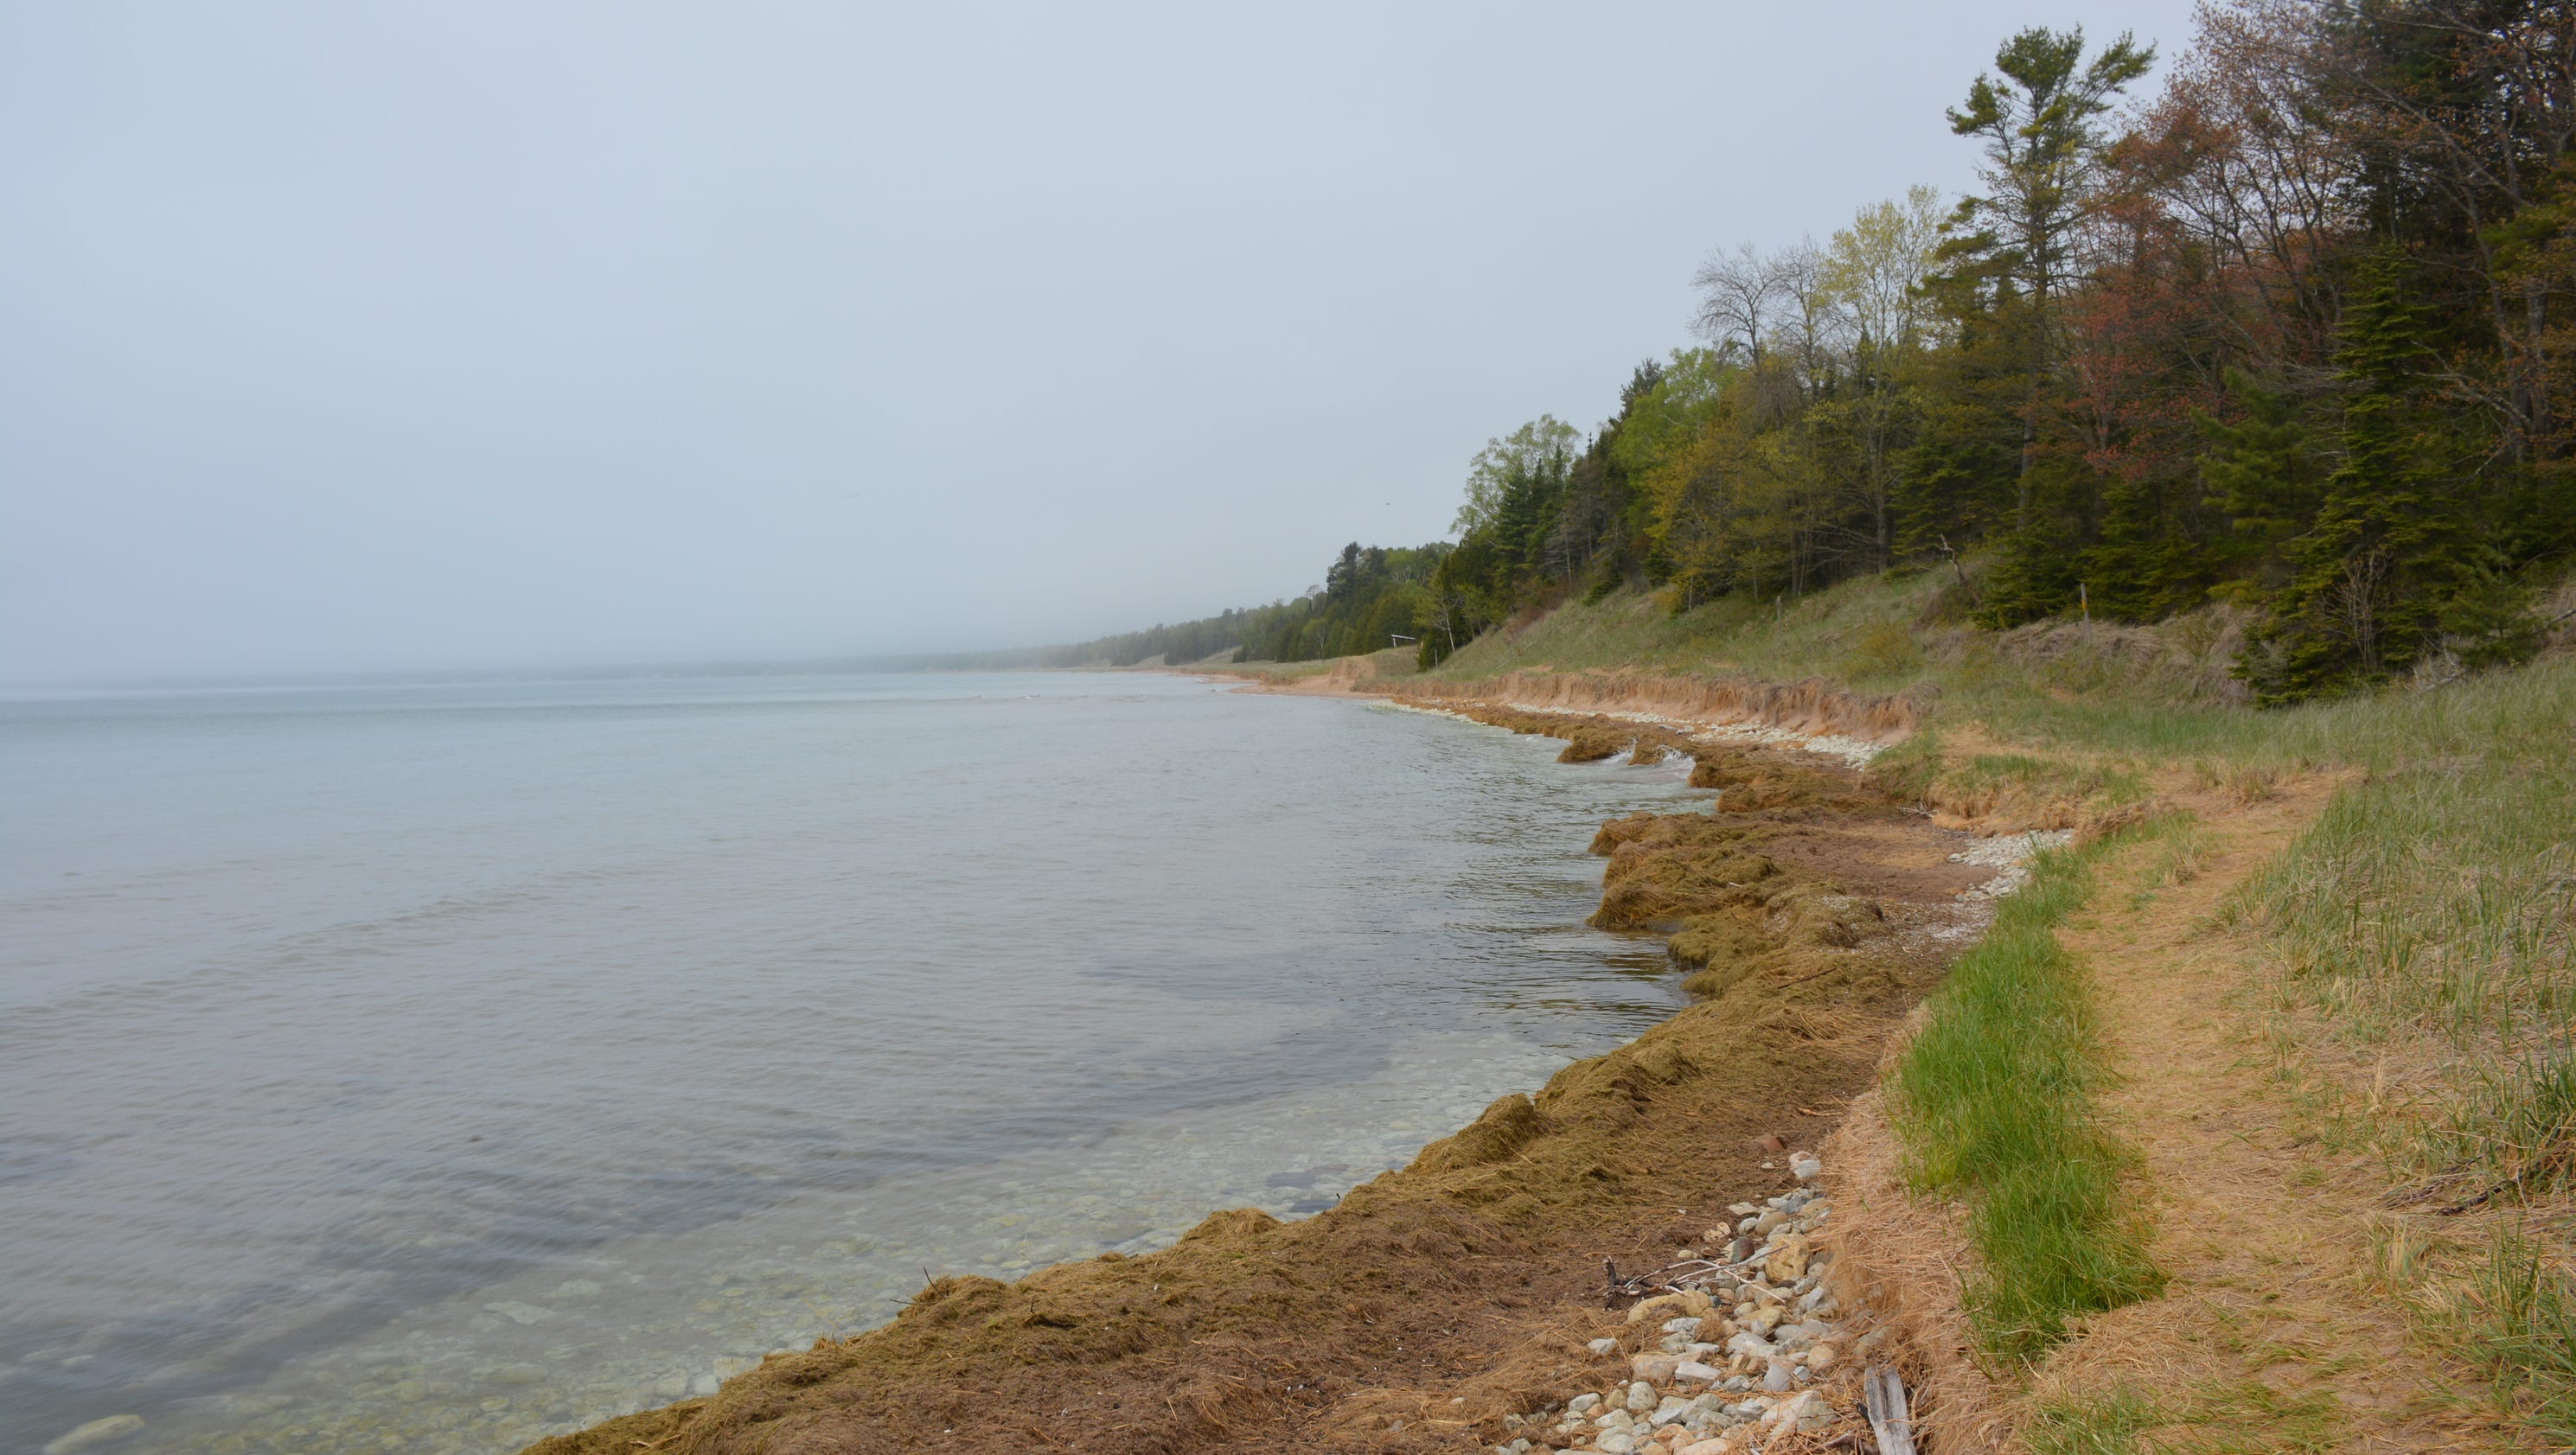 Lake Michigan Water Levels See Historic Rise